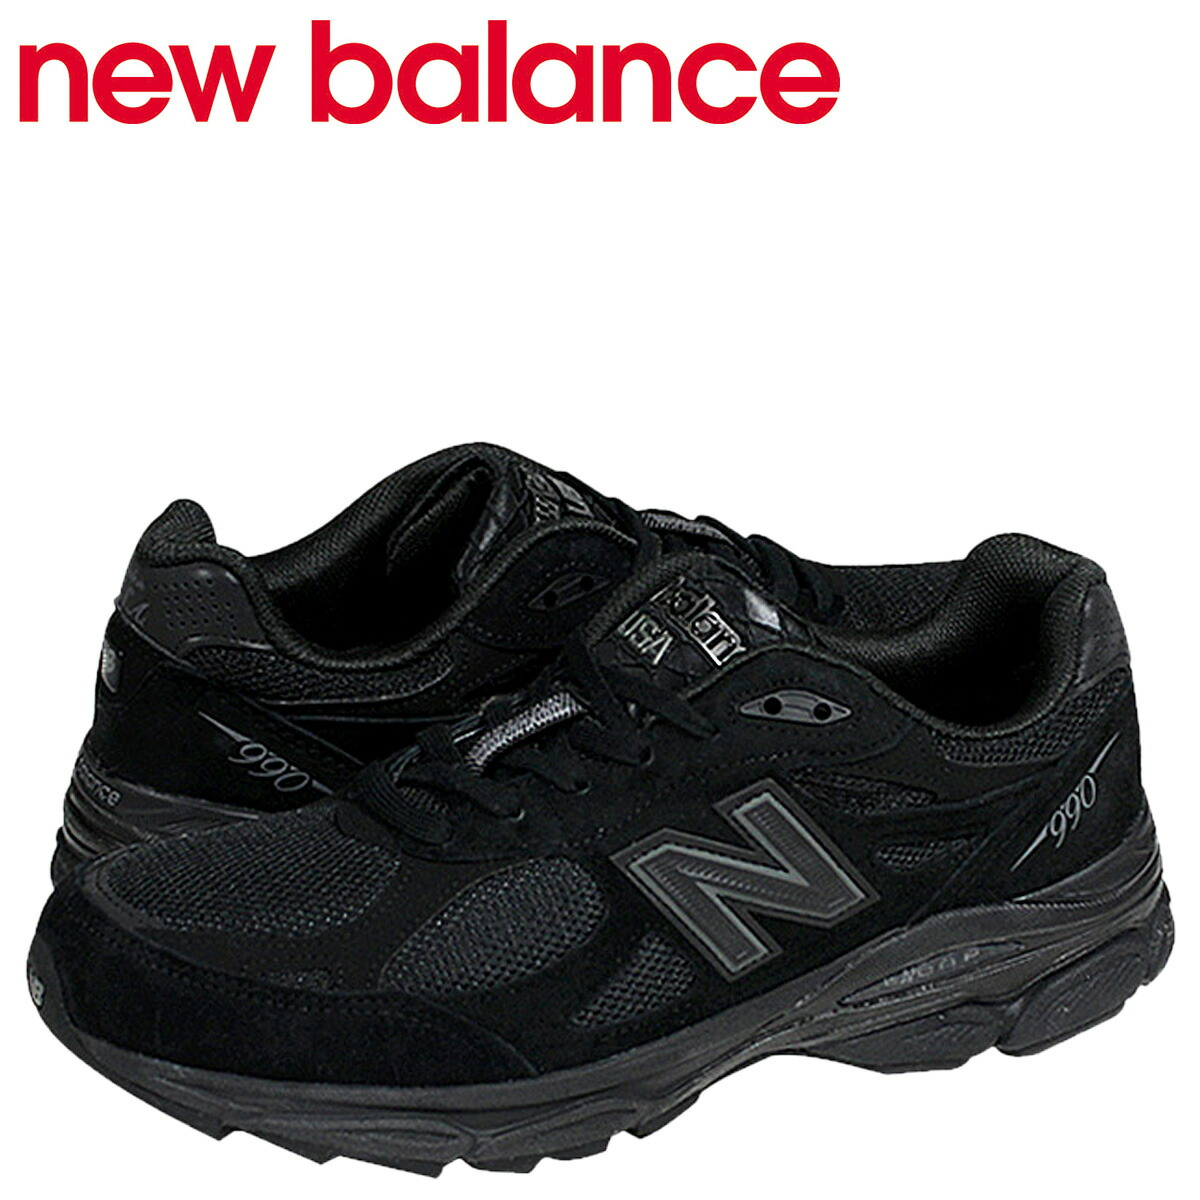 894863dca88 New Balance new balance M990TB3 sneakers D Wise suede mesh black men